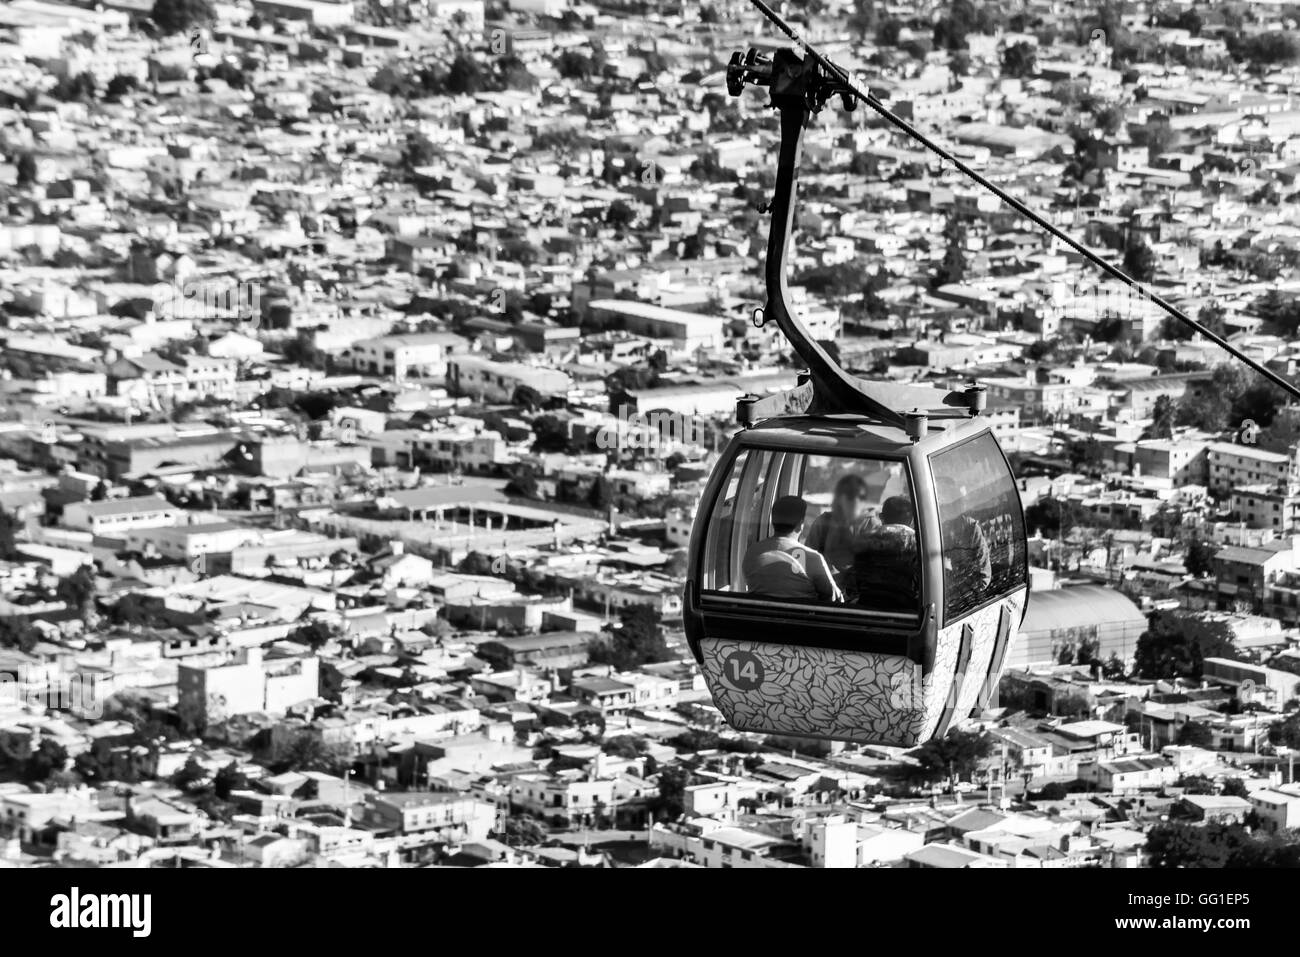 cable car in the city of Salta, Argentina. Black and white Stock Photo